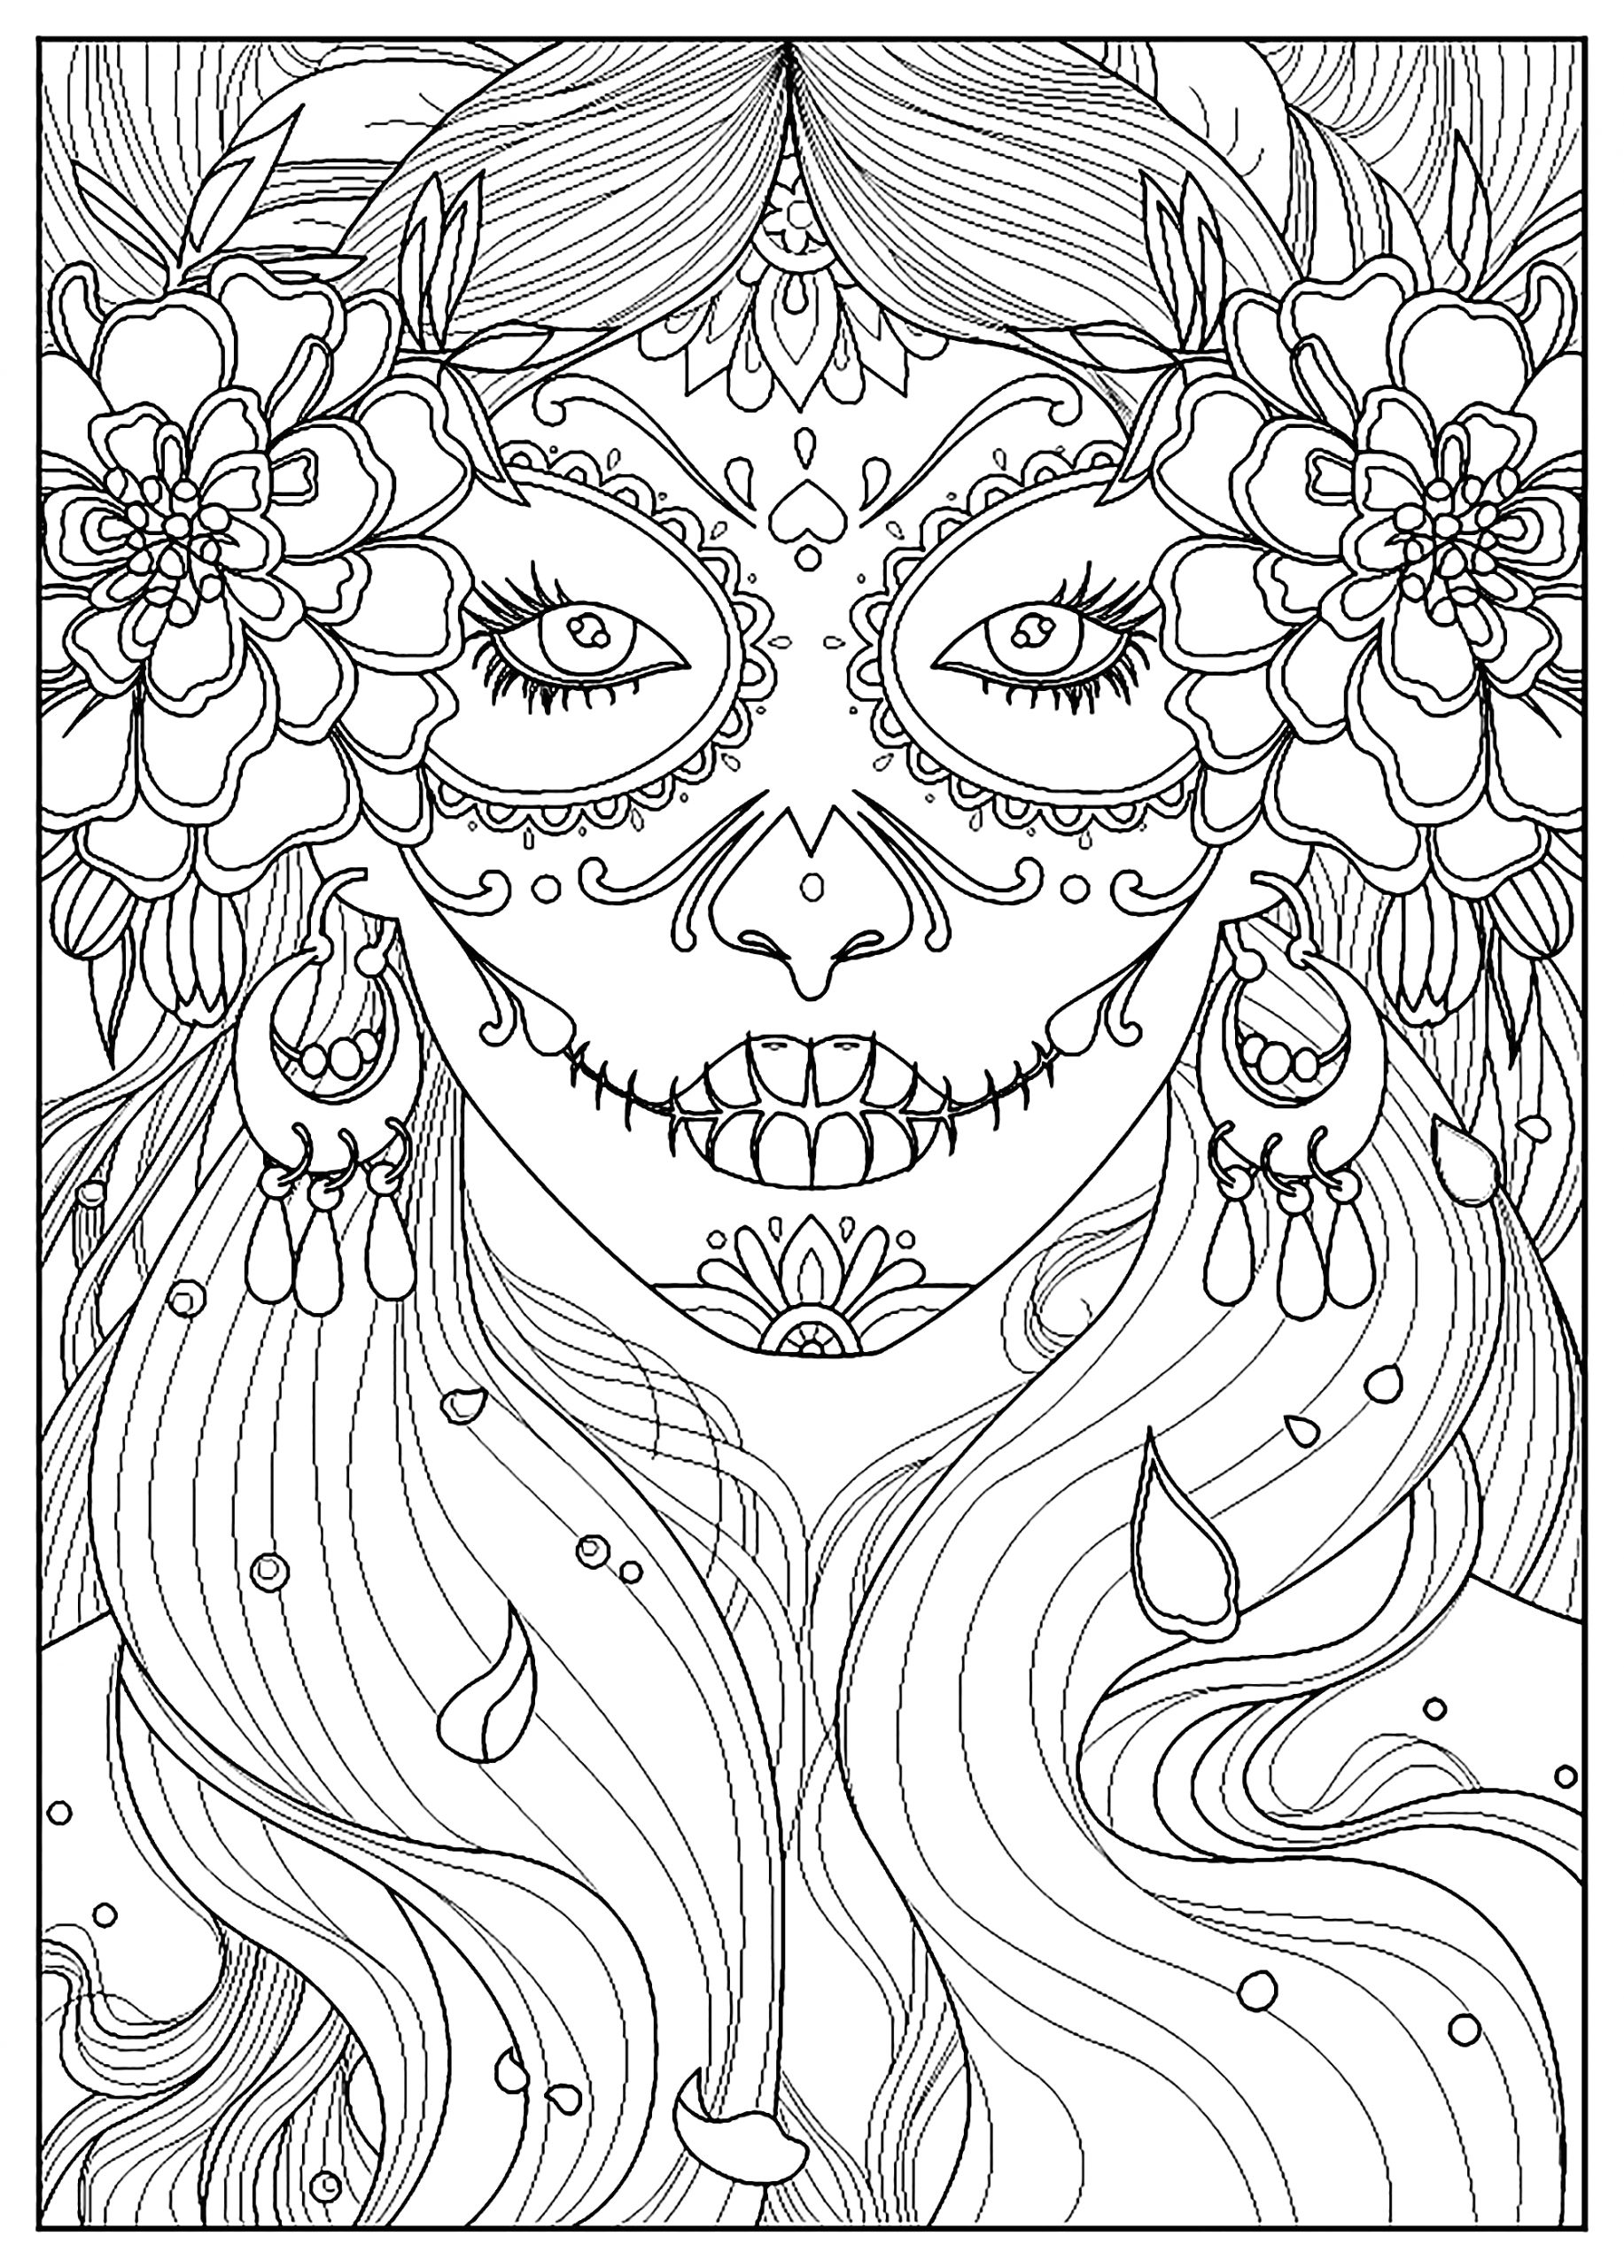 Female Dia De Los Muertos Coloring Pages Day Of the Dead Fishes Coloring Pages for Adults Adult